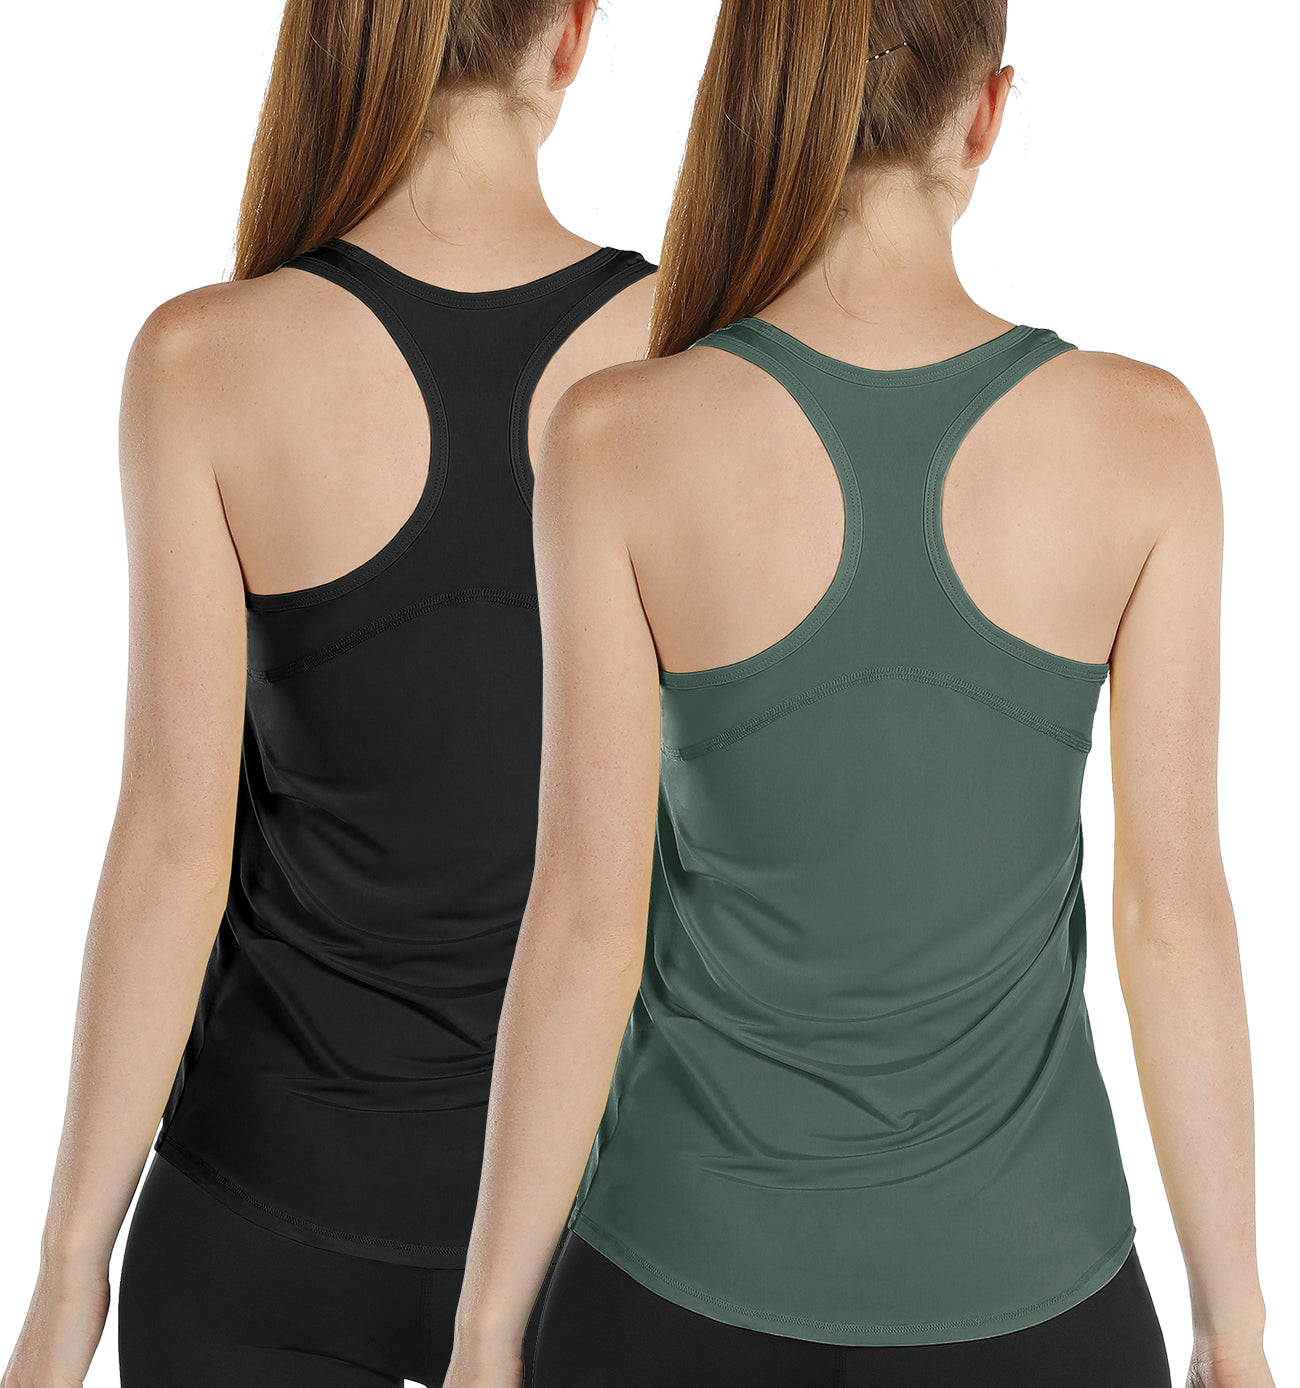 Athletic Yoga Tops icyzone Workout Tank Tops for Women 2-Pack Racerback Running Vest Top